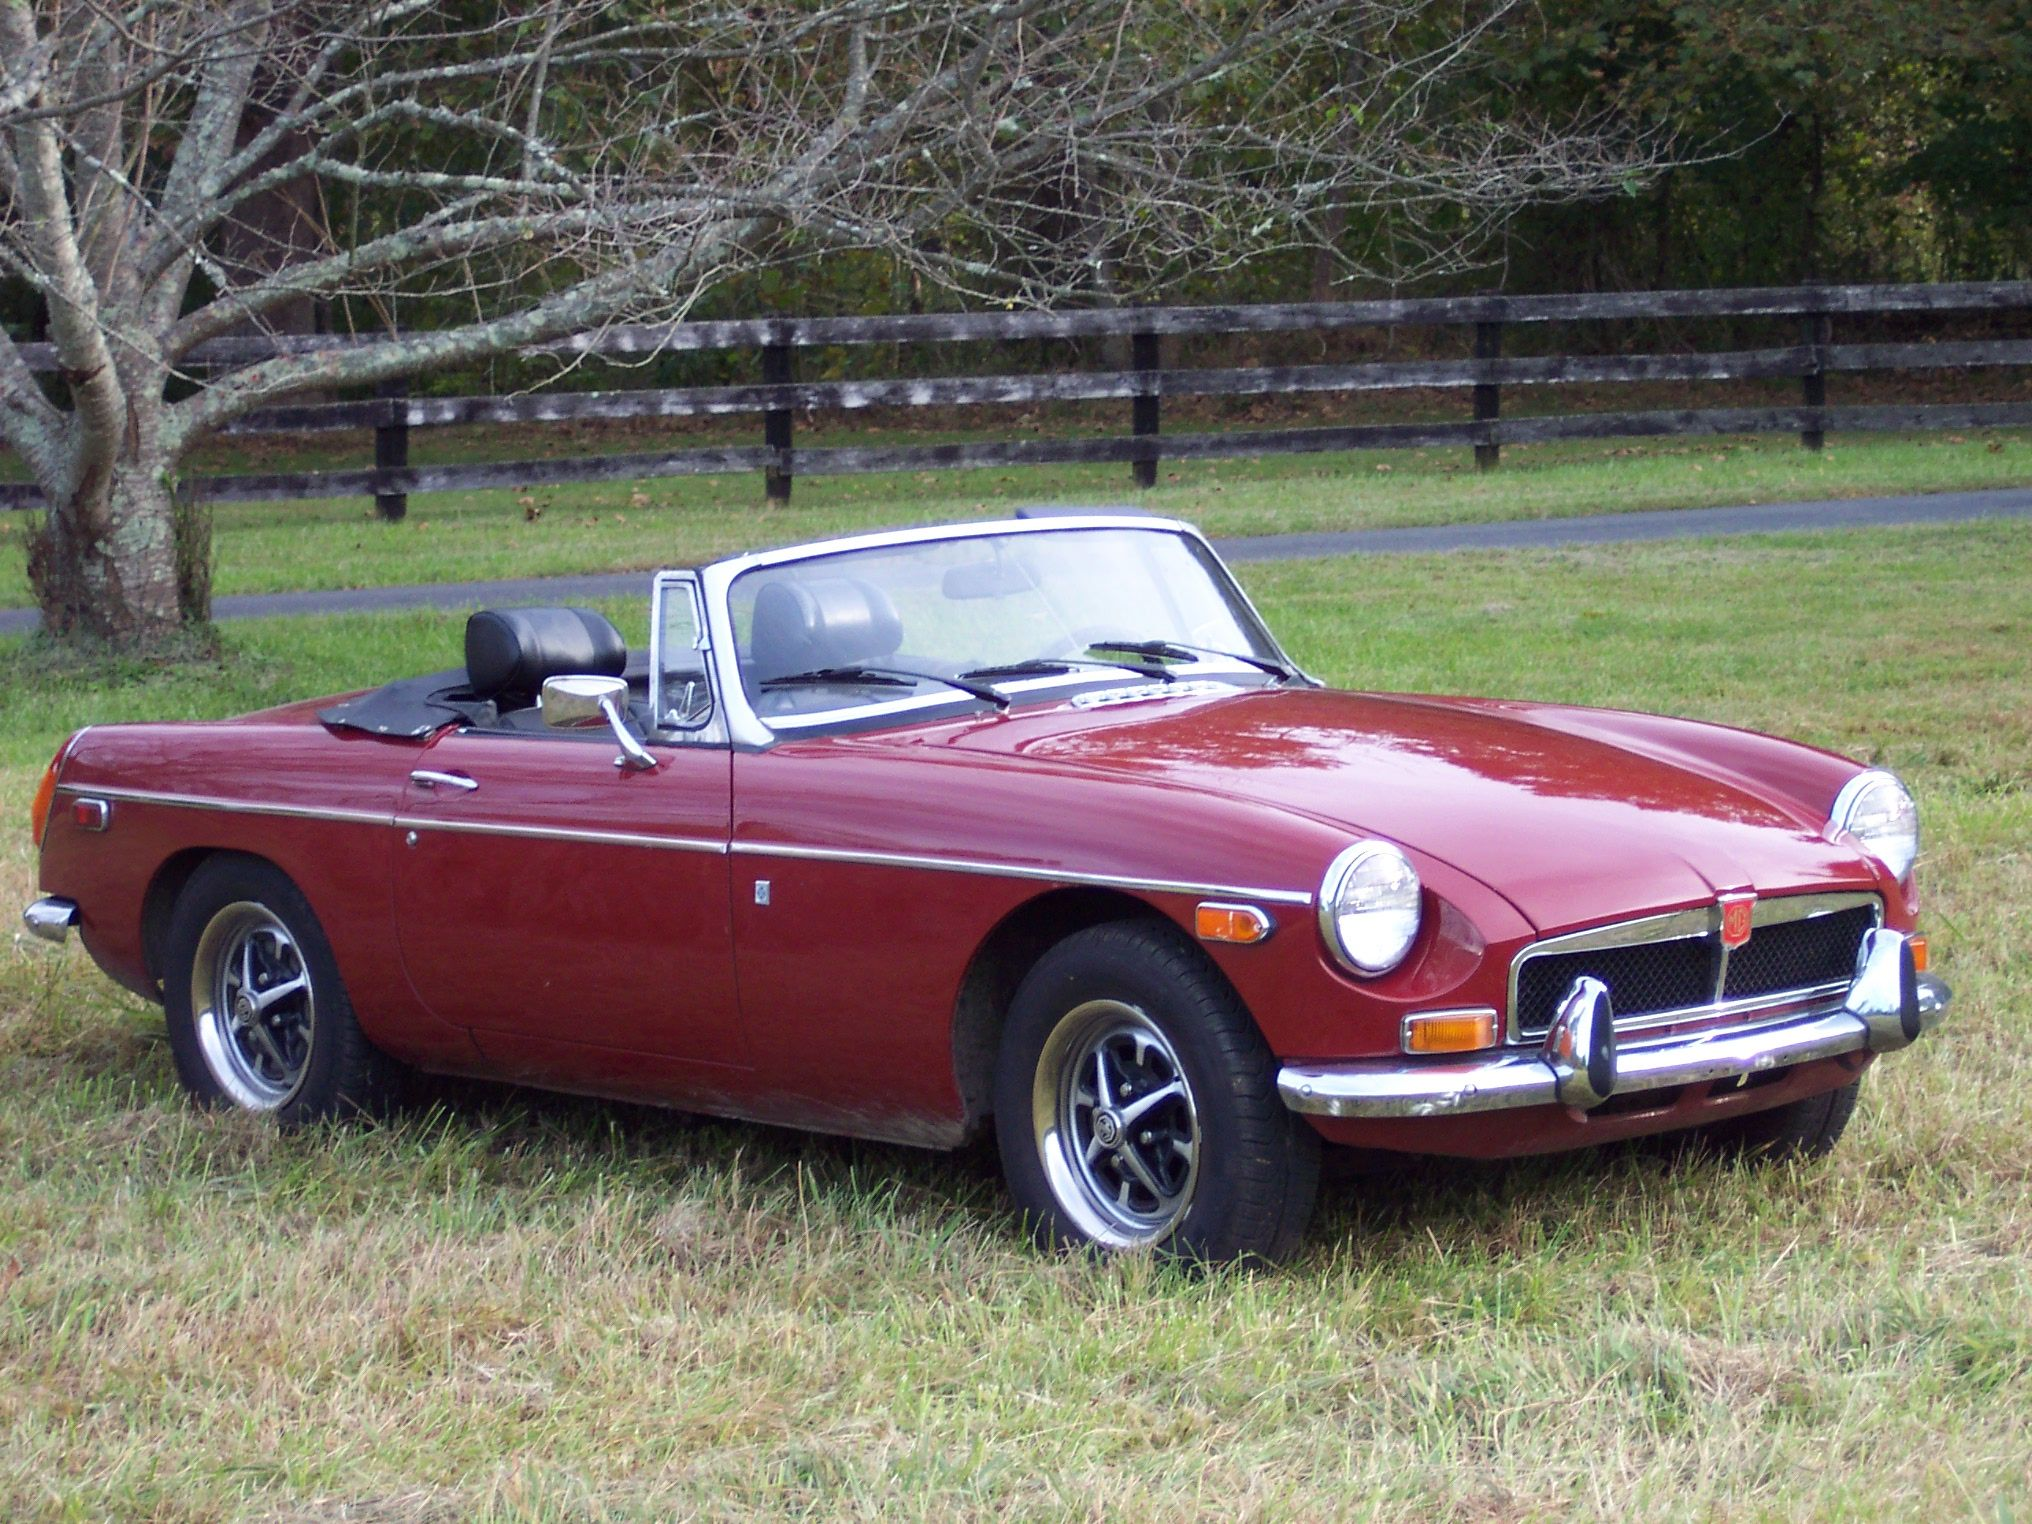 Mgb Roadster 1971 To 1974 Reminds Me Of Our Little Mg Way Back